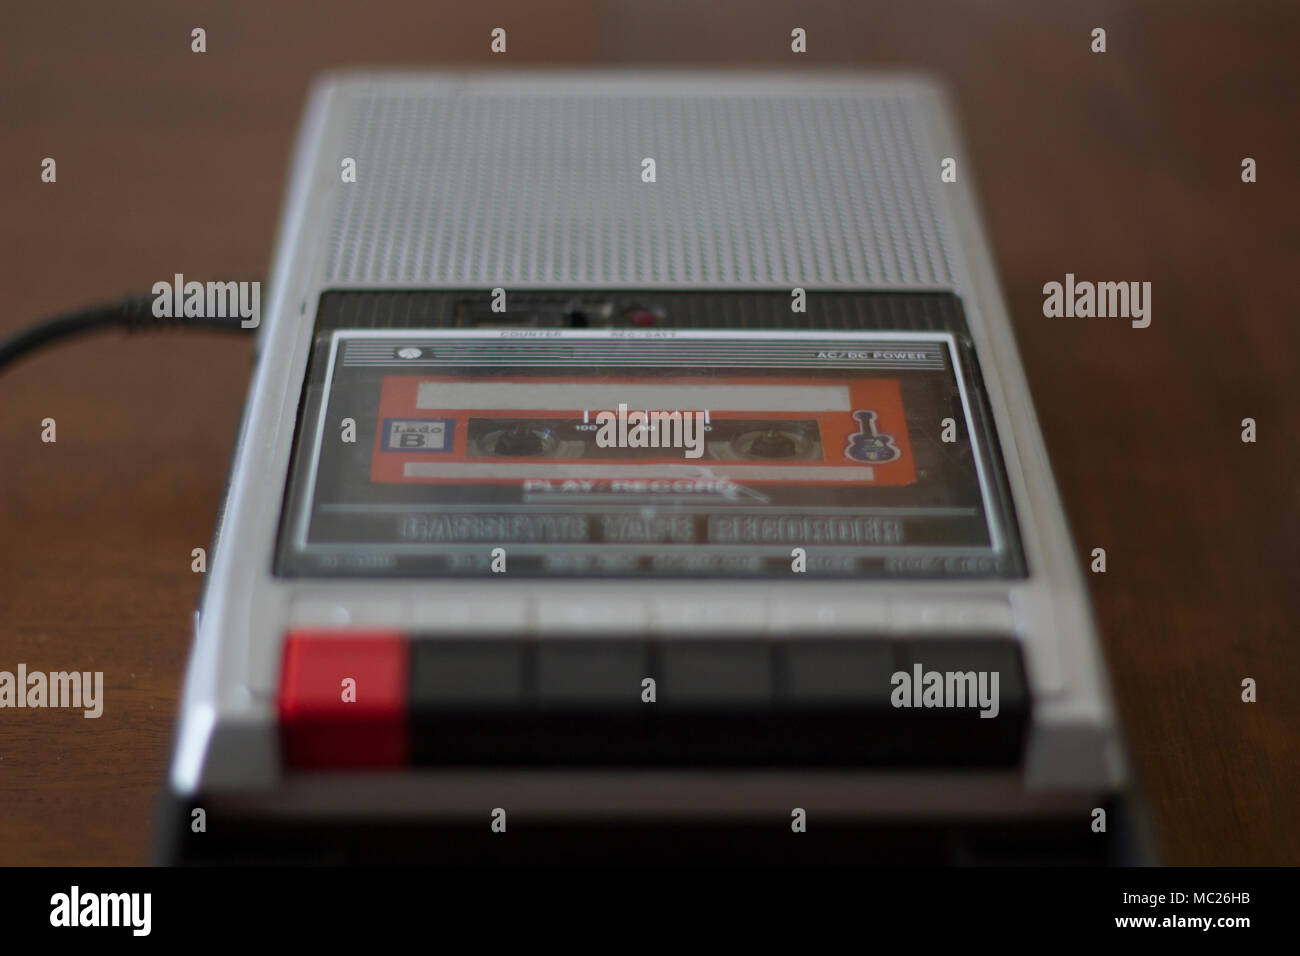 Vintage cassette tape player with audio cassette tape inside - Stock Image